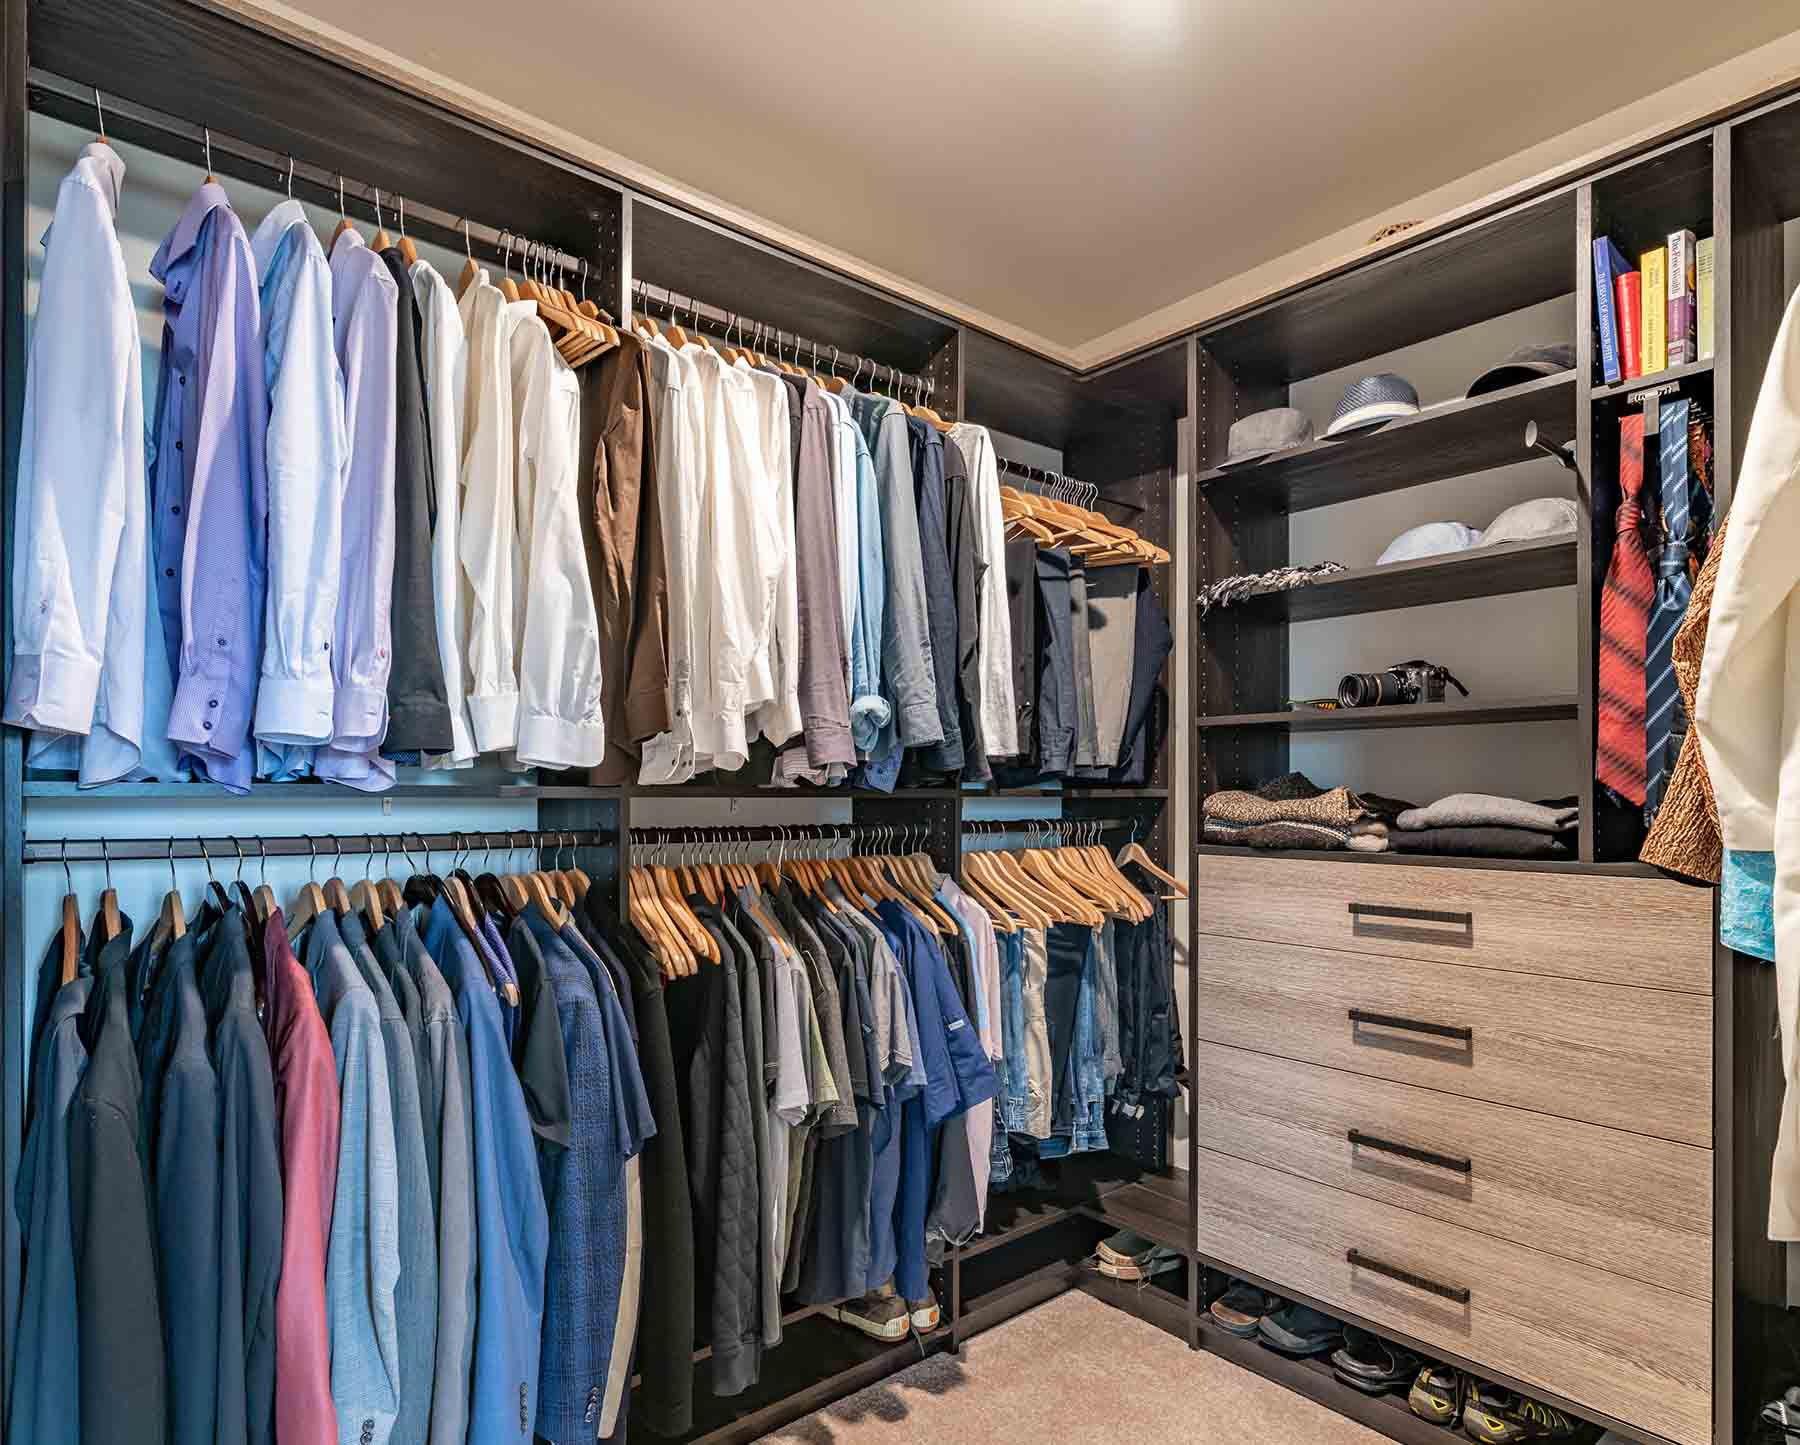 Can a New Closet Increase My Home's Value?